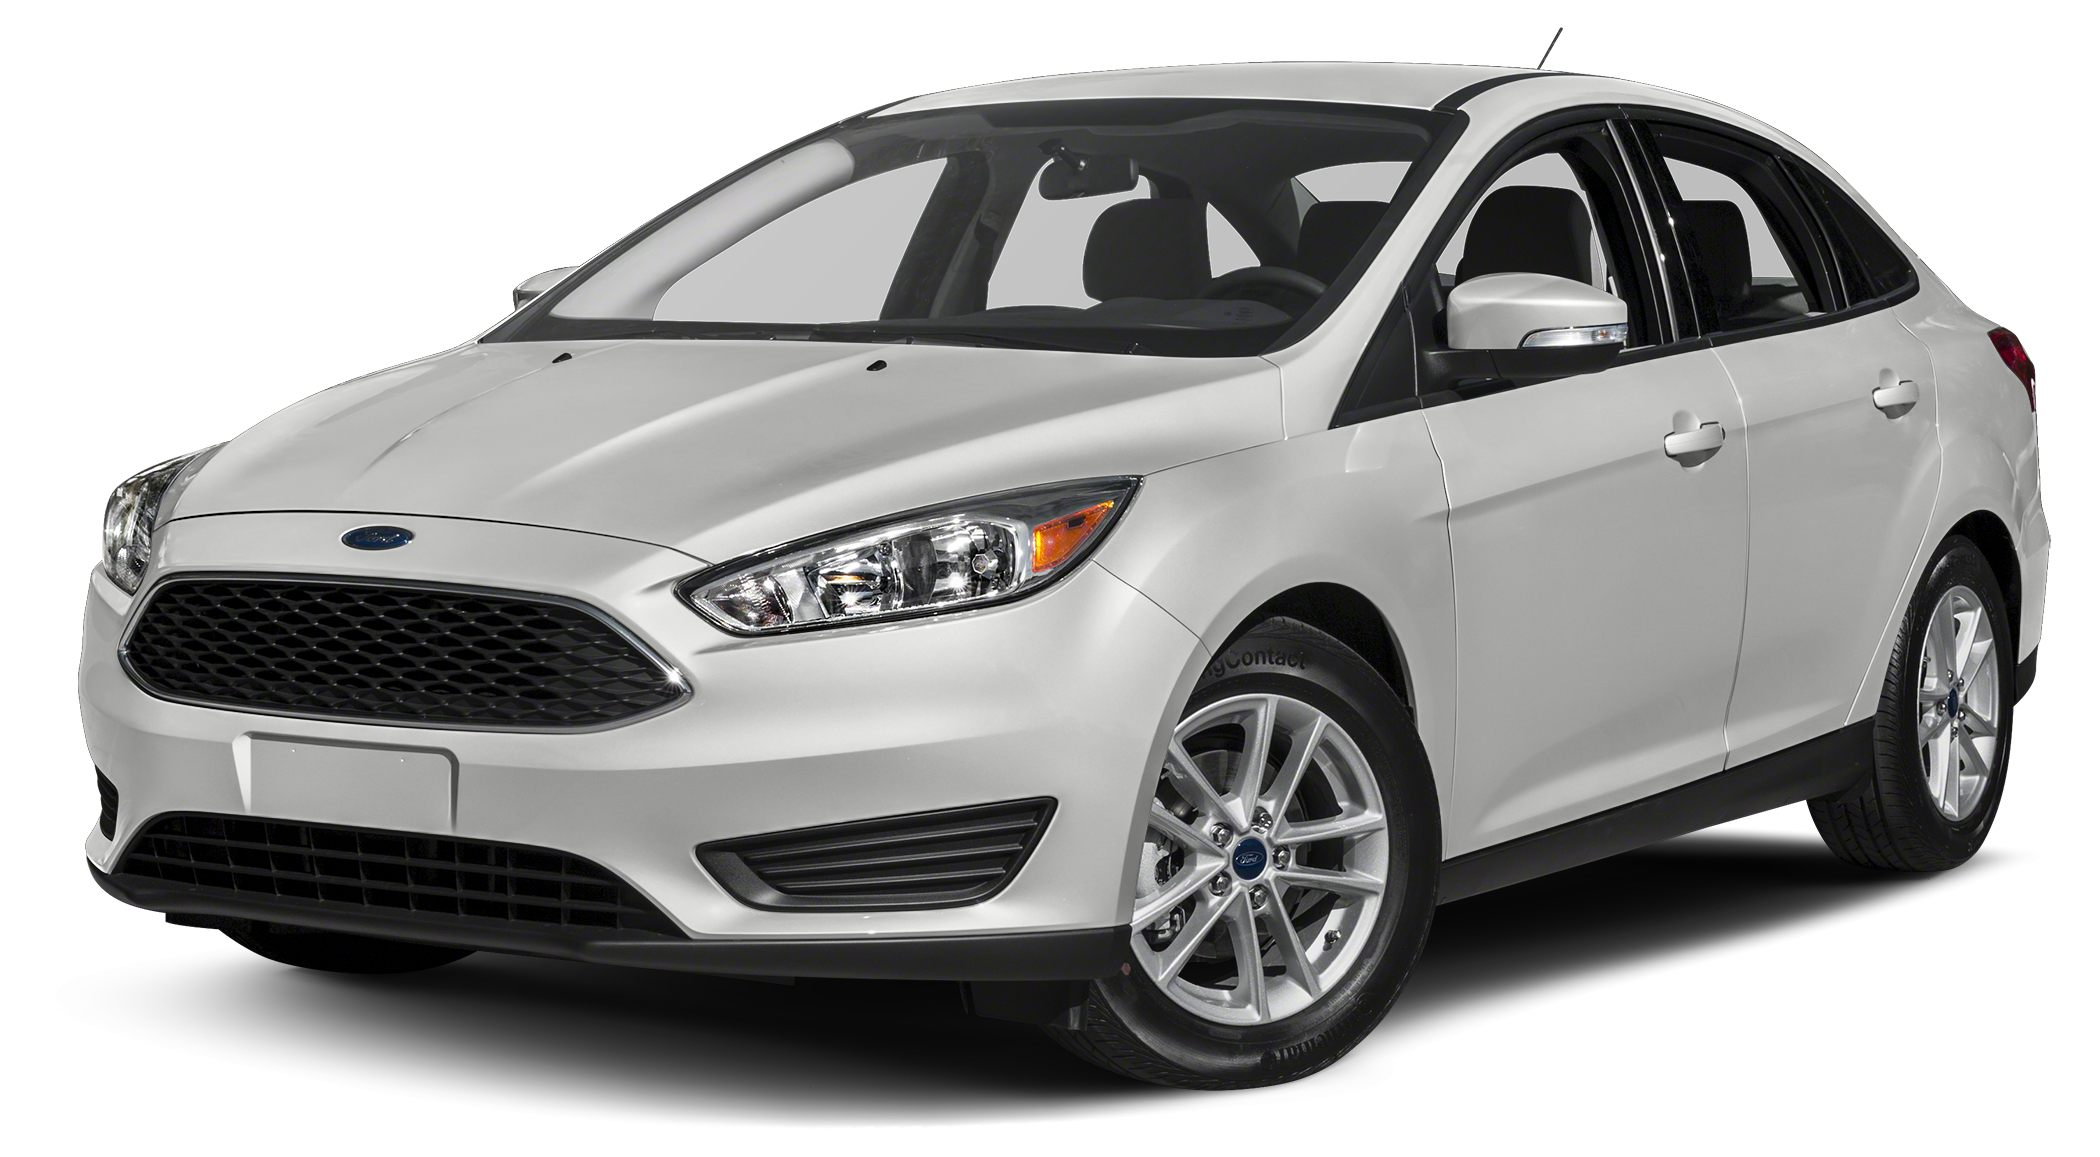 2015 Ford Focus SE Miles 5Color Ingot Silver Metallic Stock 15C0585 VIN 1FADP3F25FL382191